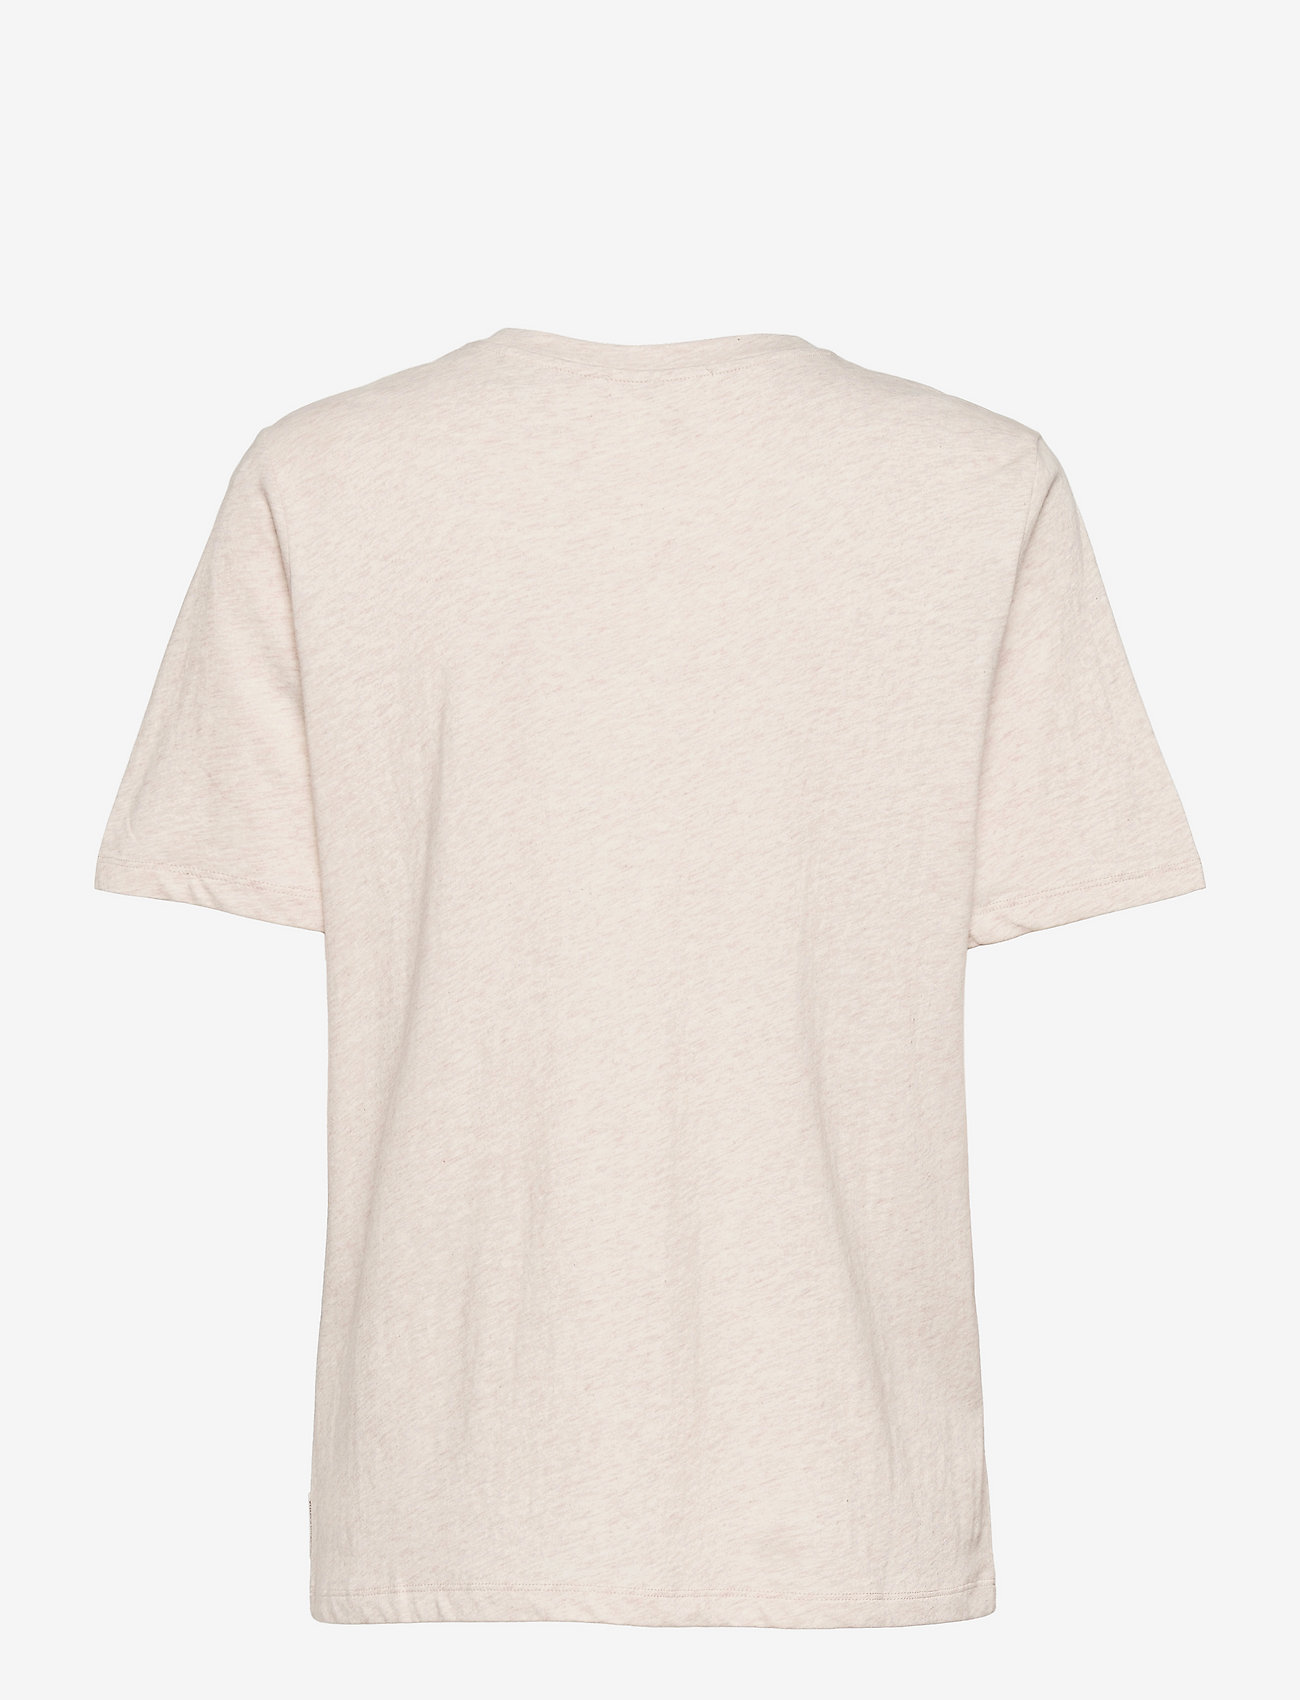 Scotch & Soda - Organic cotton tee with graphic - t-shirts - off white melange - 1